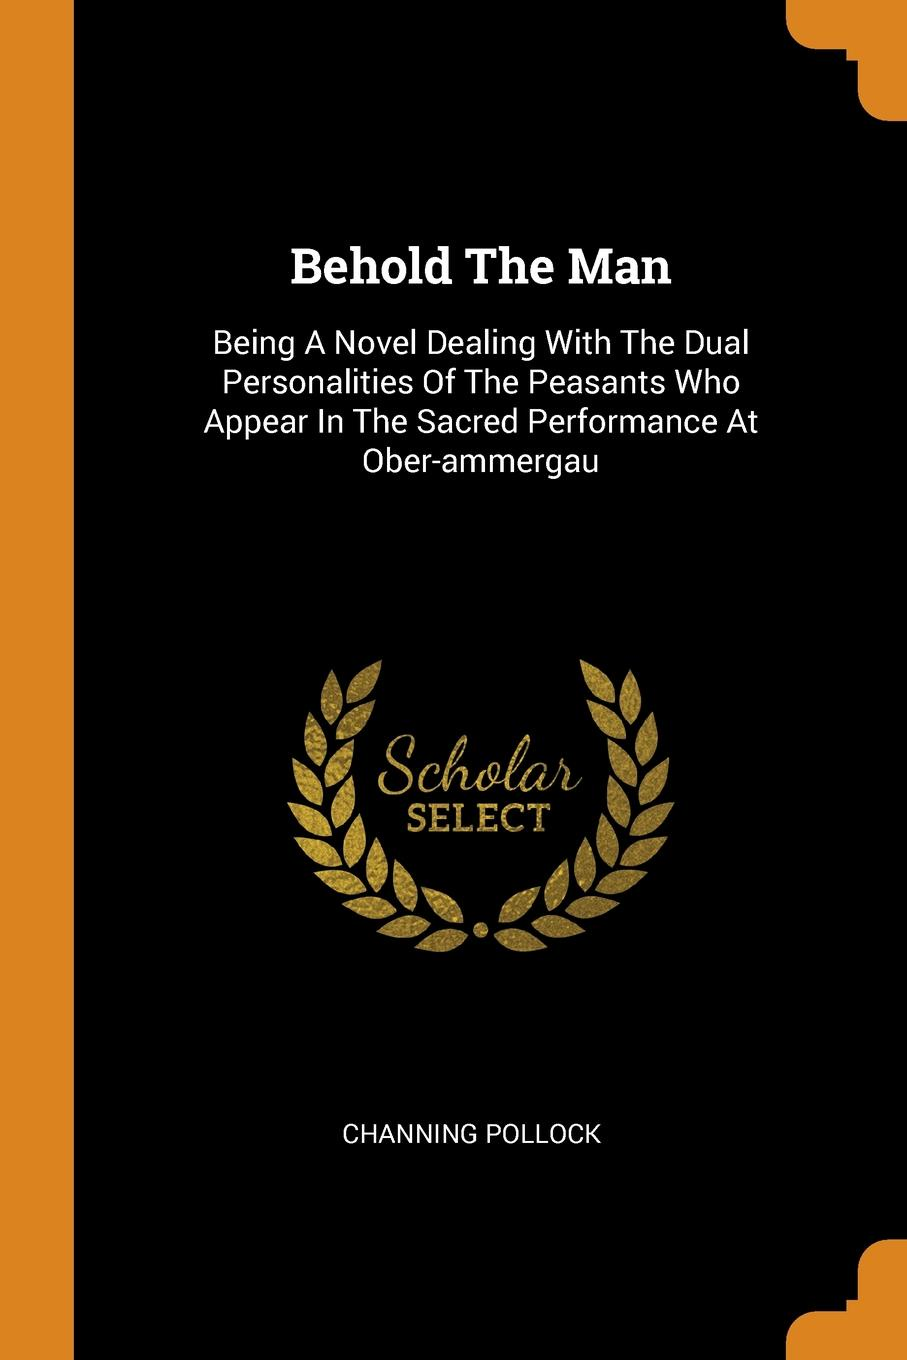 Behold The Man. Being A Novel Dealing With The Dual Personalities Of The Peasants Who Appear In The Sacred Performance At Ober-ammergau